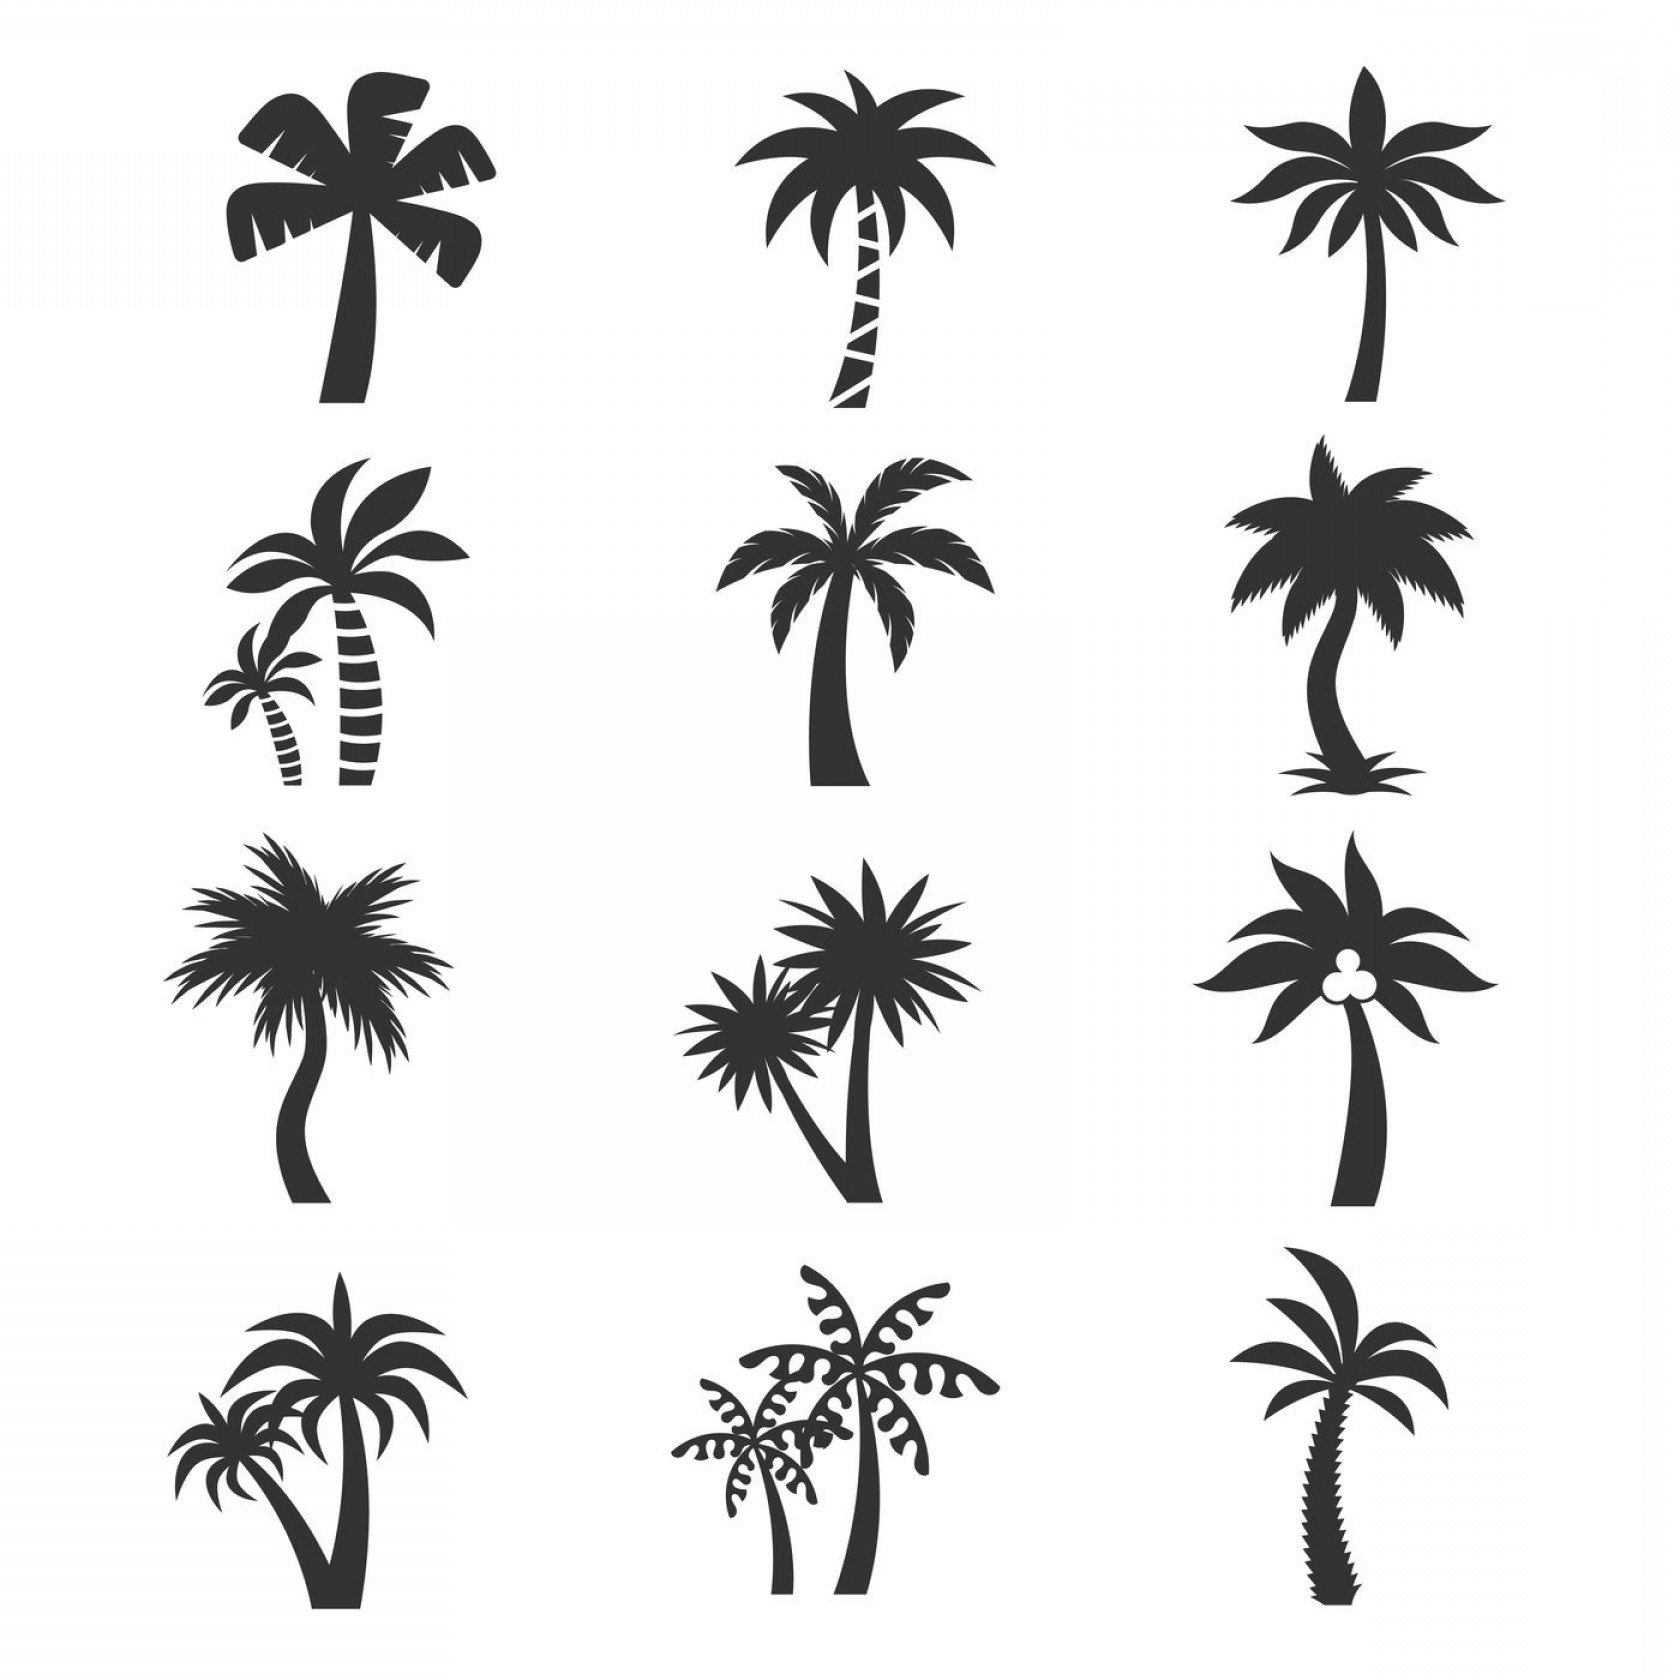 Watercolor Palm Tree Vector: Tropical Palm Tree Vector Icons Set Silhouettes On The White Backgrou